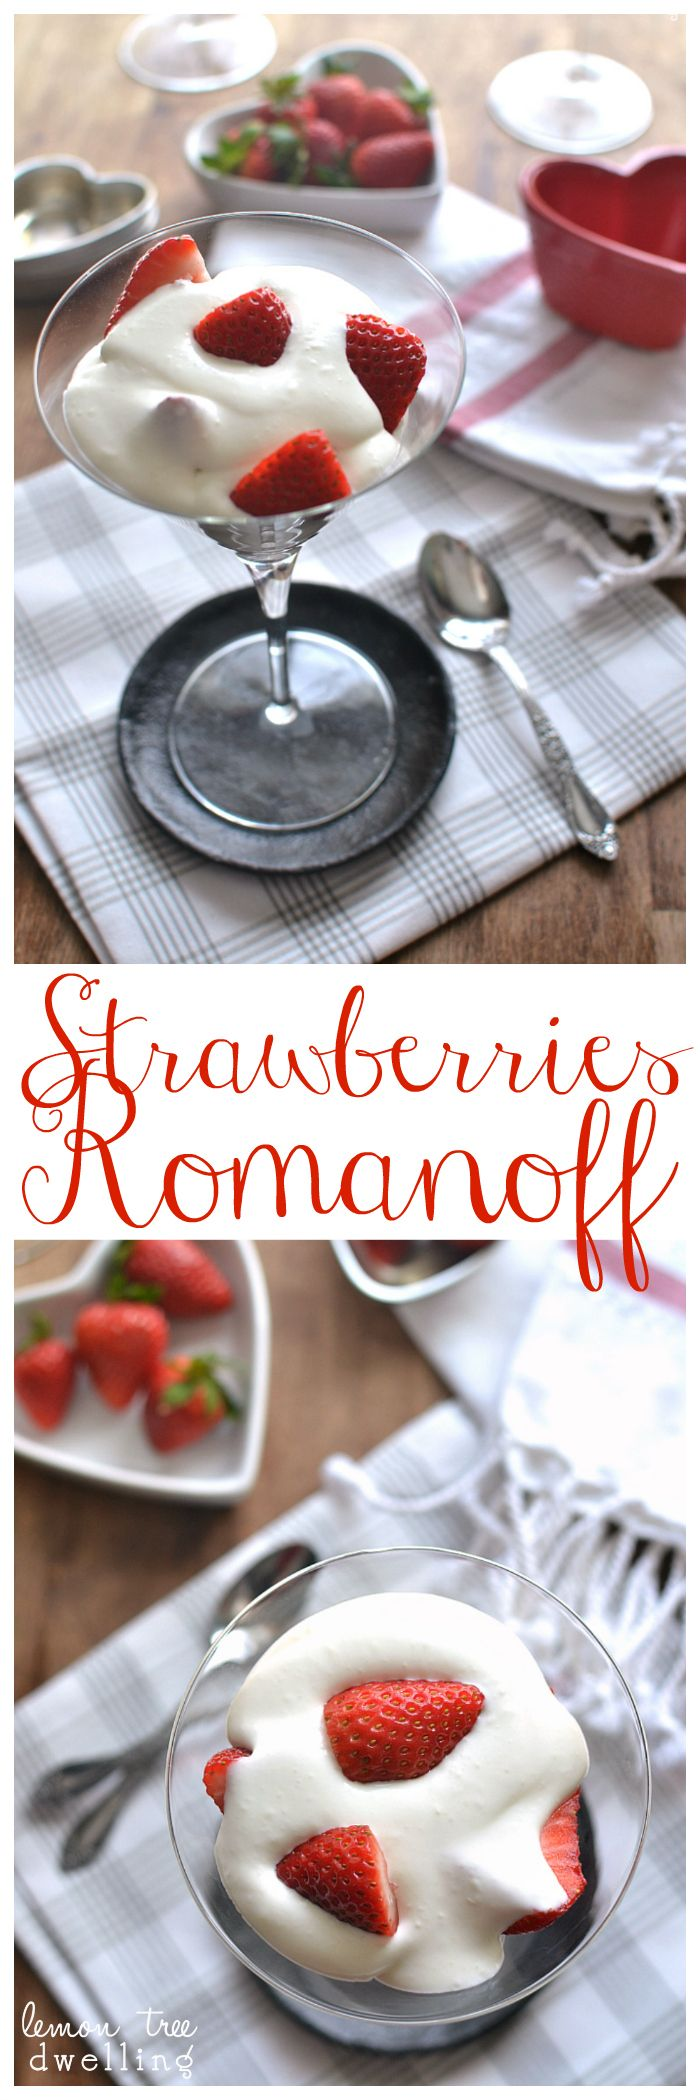 Strawberries Romanoff - a simple, elegant dessert that's perfect for Valentine's Day or date night in!